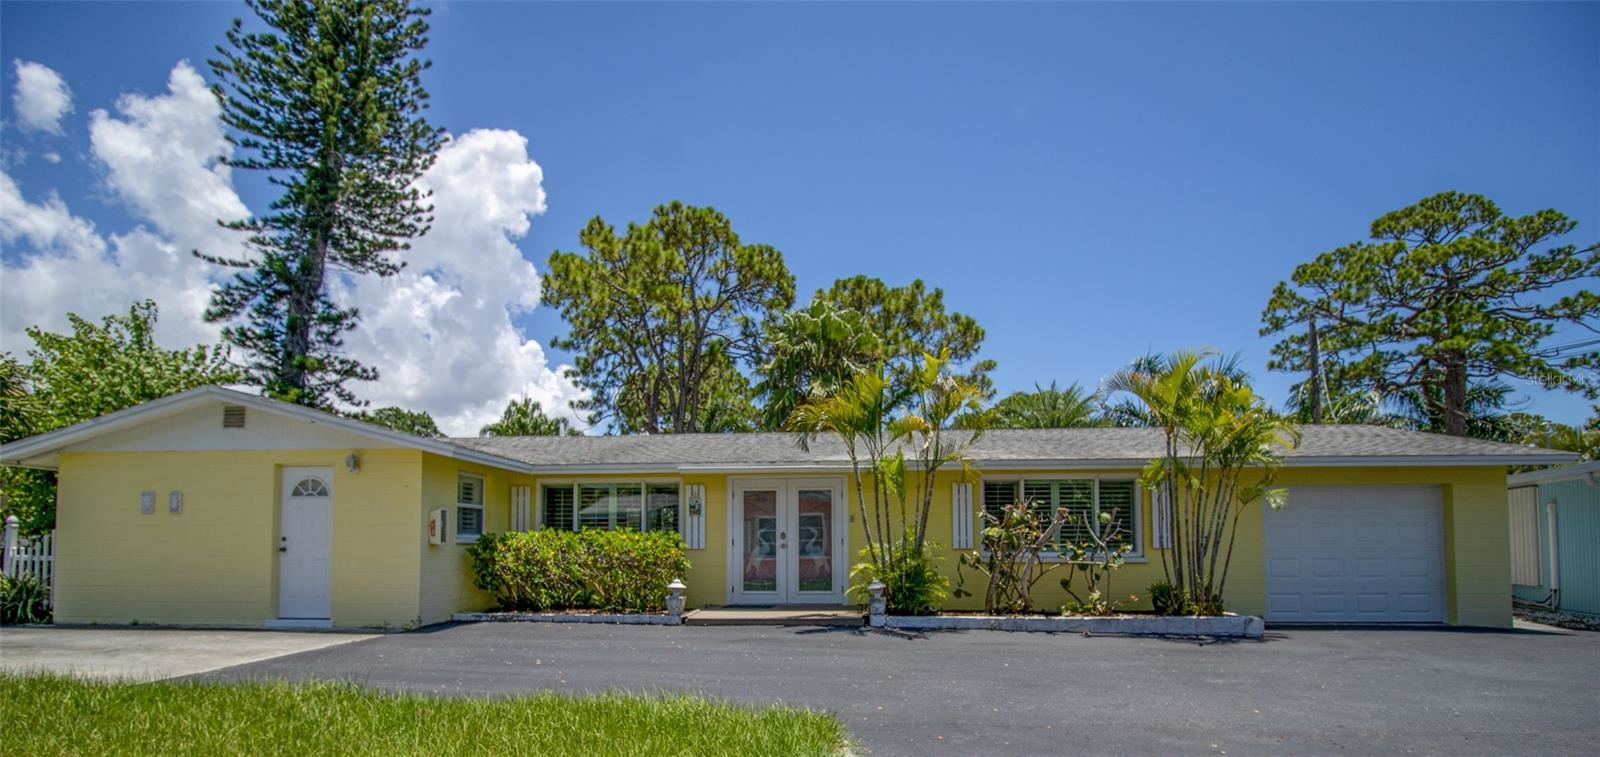 Photo of 470 S MCCALL ROAD #Manor, ENGLEWOOD, FL 34223 (MLS # D6120194)